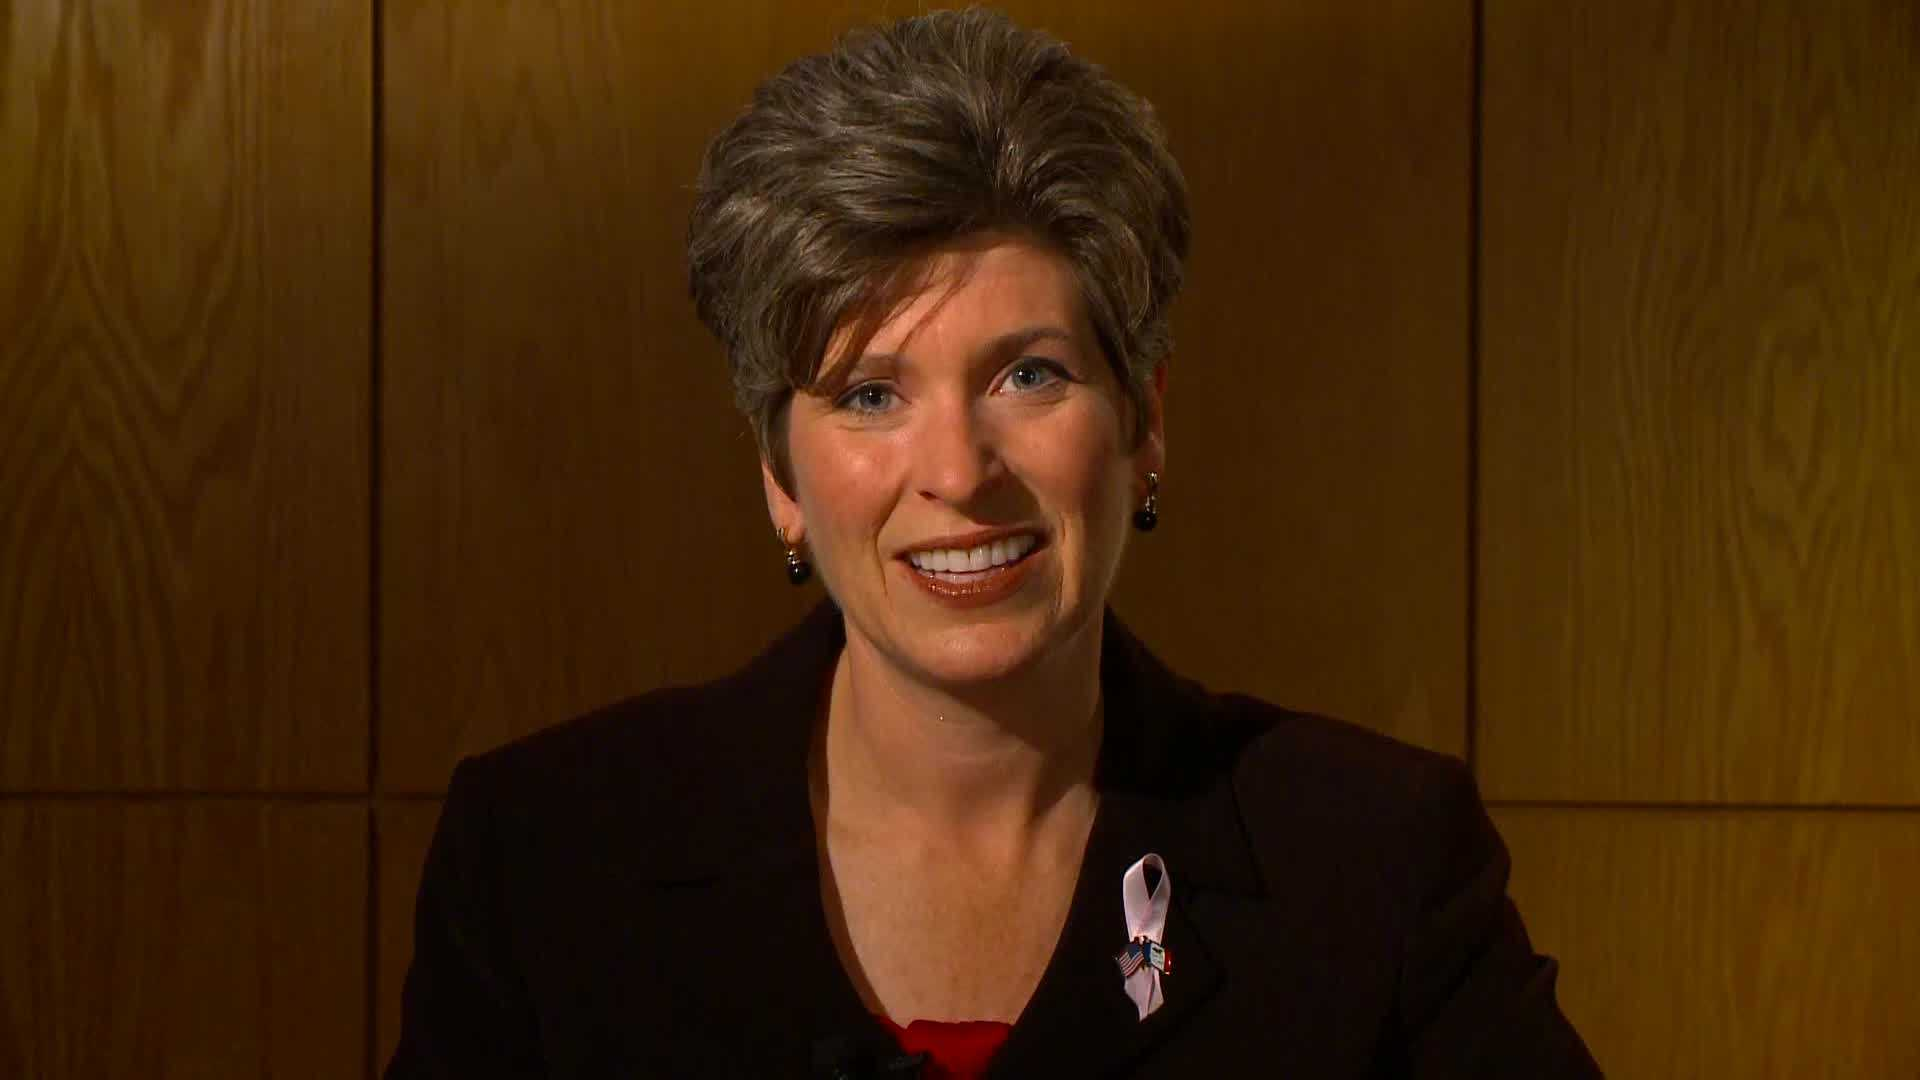 Joni Ernst asks for your vote in the race for Iowa U.S. Senate.